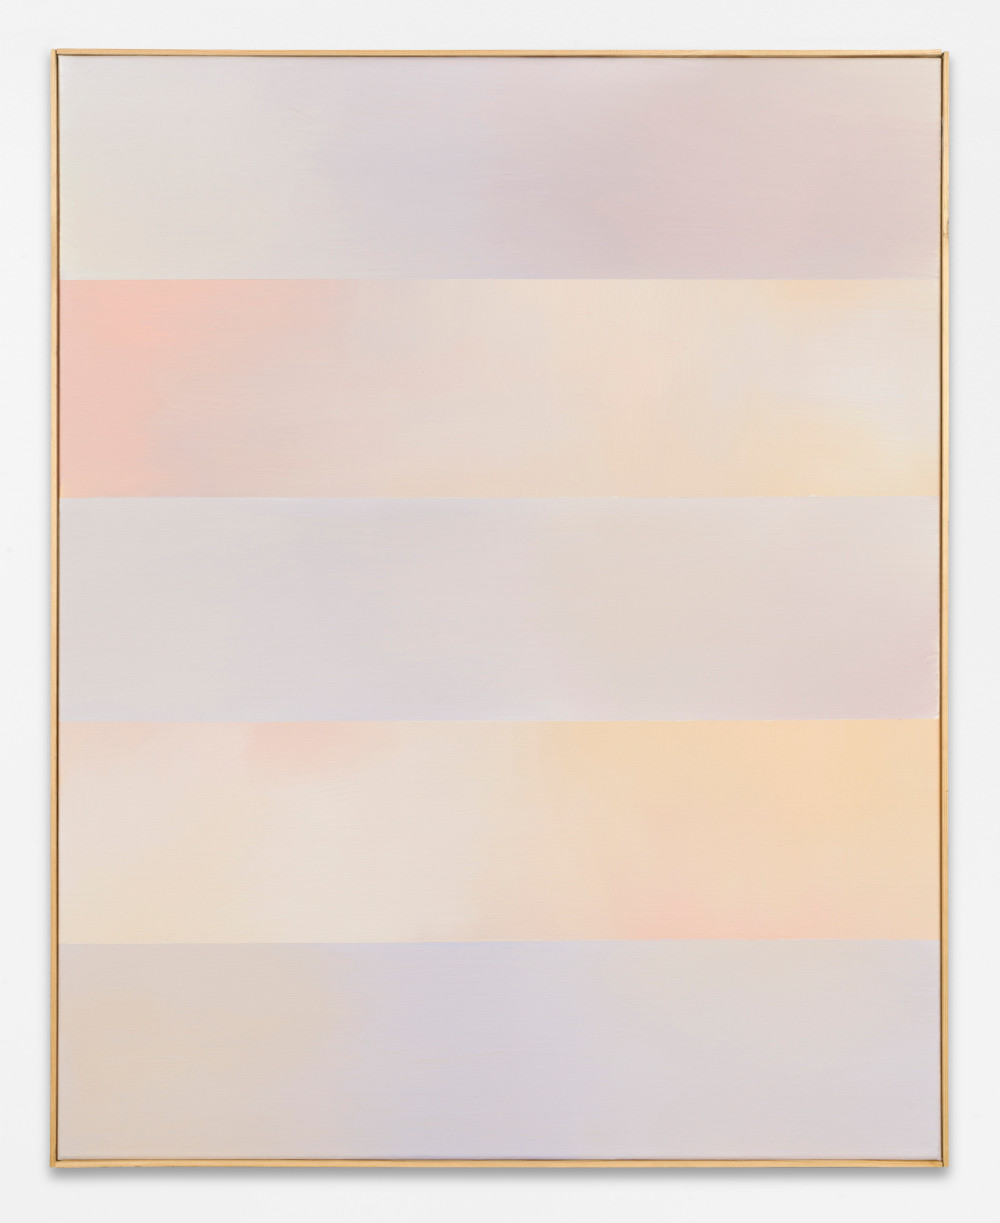 Ulrich Erben, Untitled, 2019, acrylic paint on canvas, 100 x 80 cm, Courtesy Ulrich Erben and BASTIAN